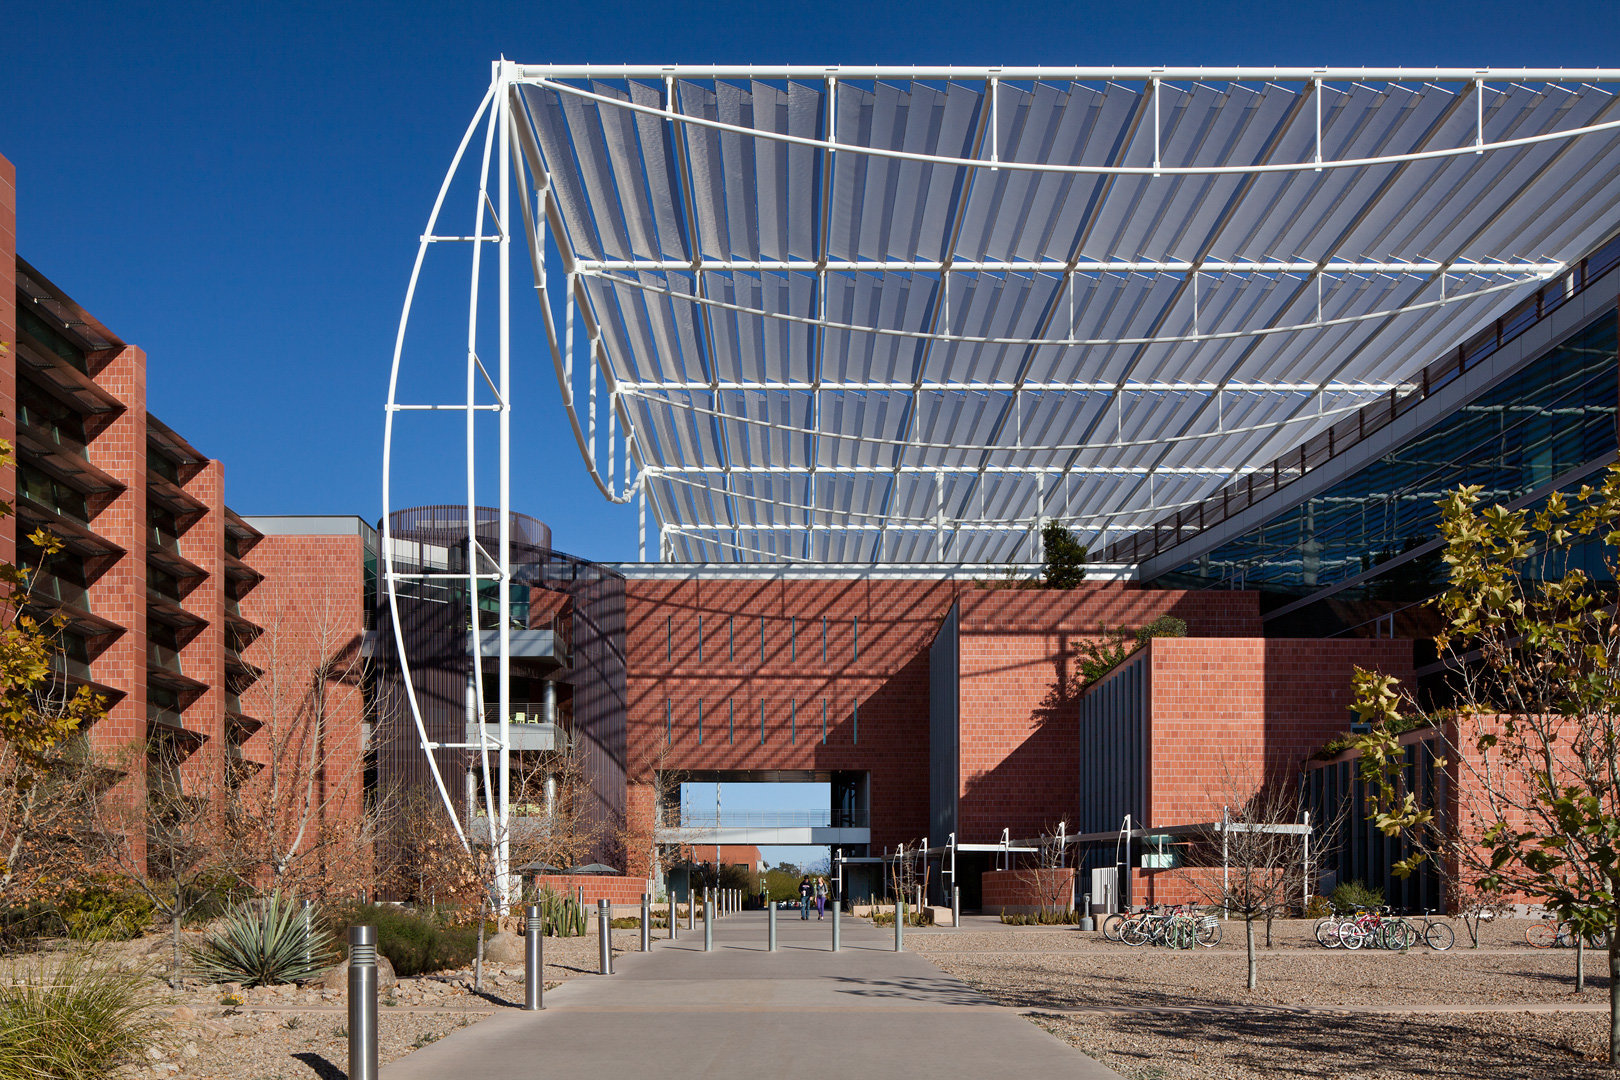 University of Arizona, Keating Bldg